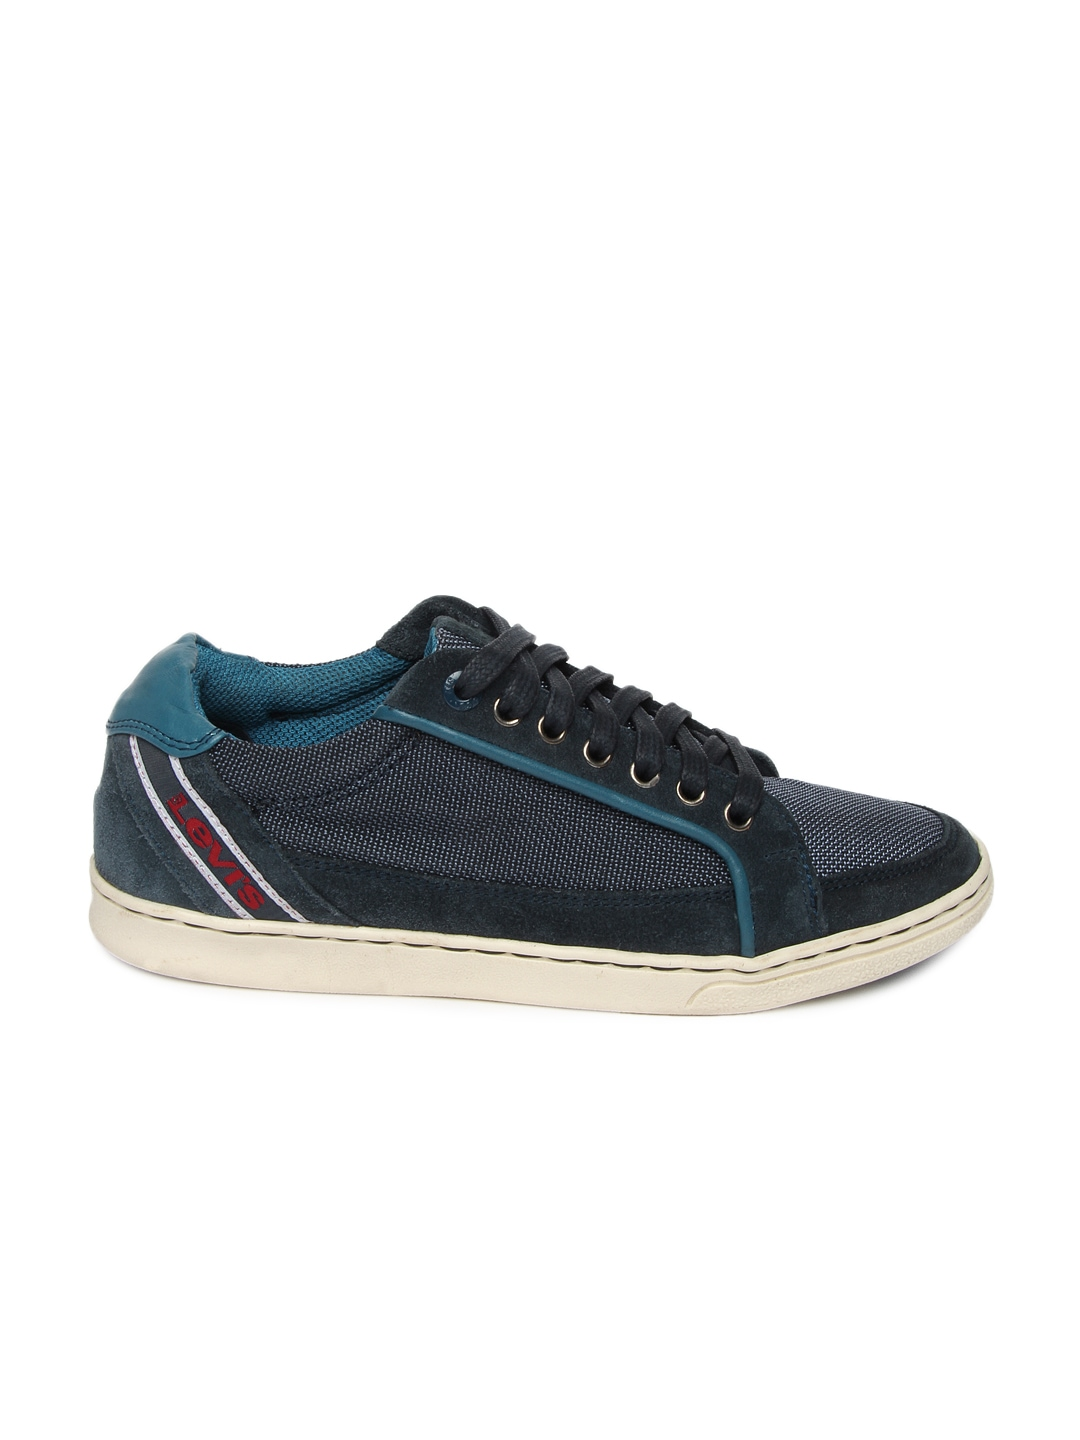 myntra levis navy casual shoes 461231 buy myntra